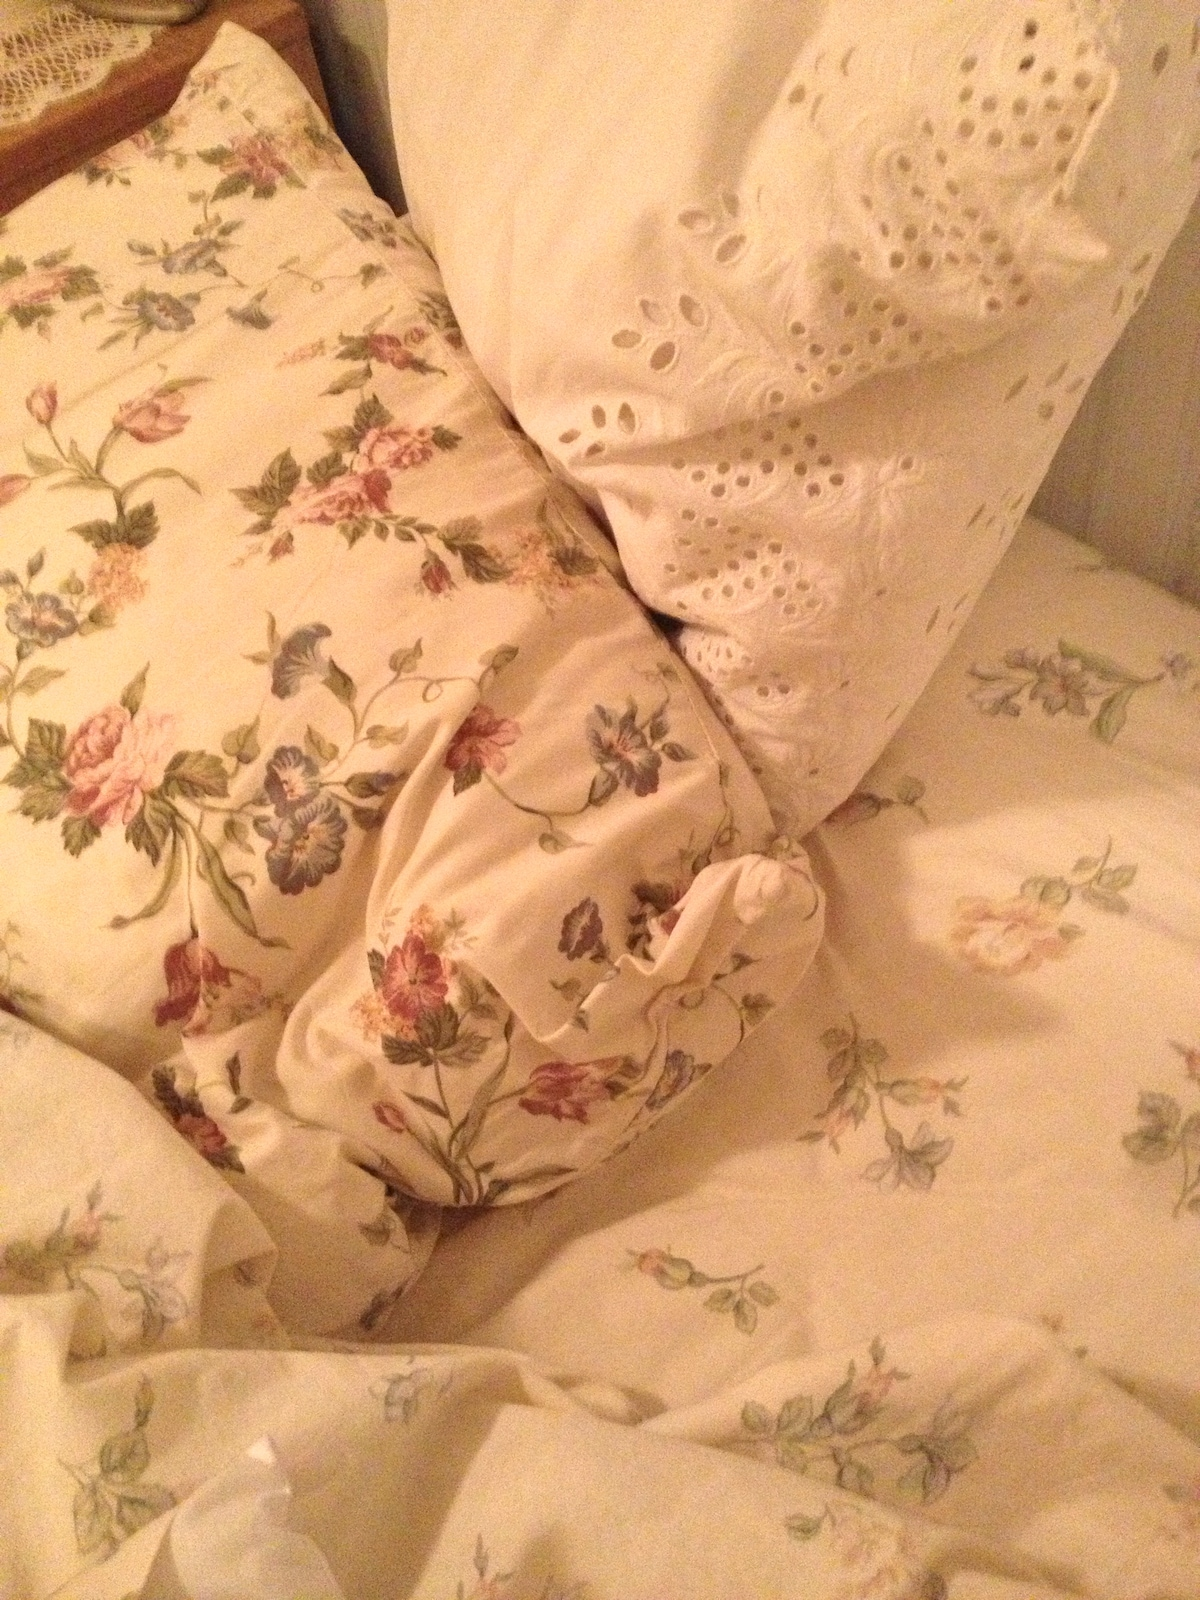 Changing the sheets. These were my mother's linens.